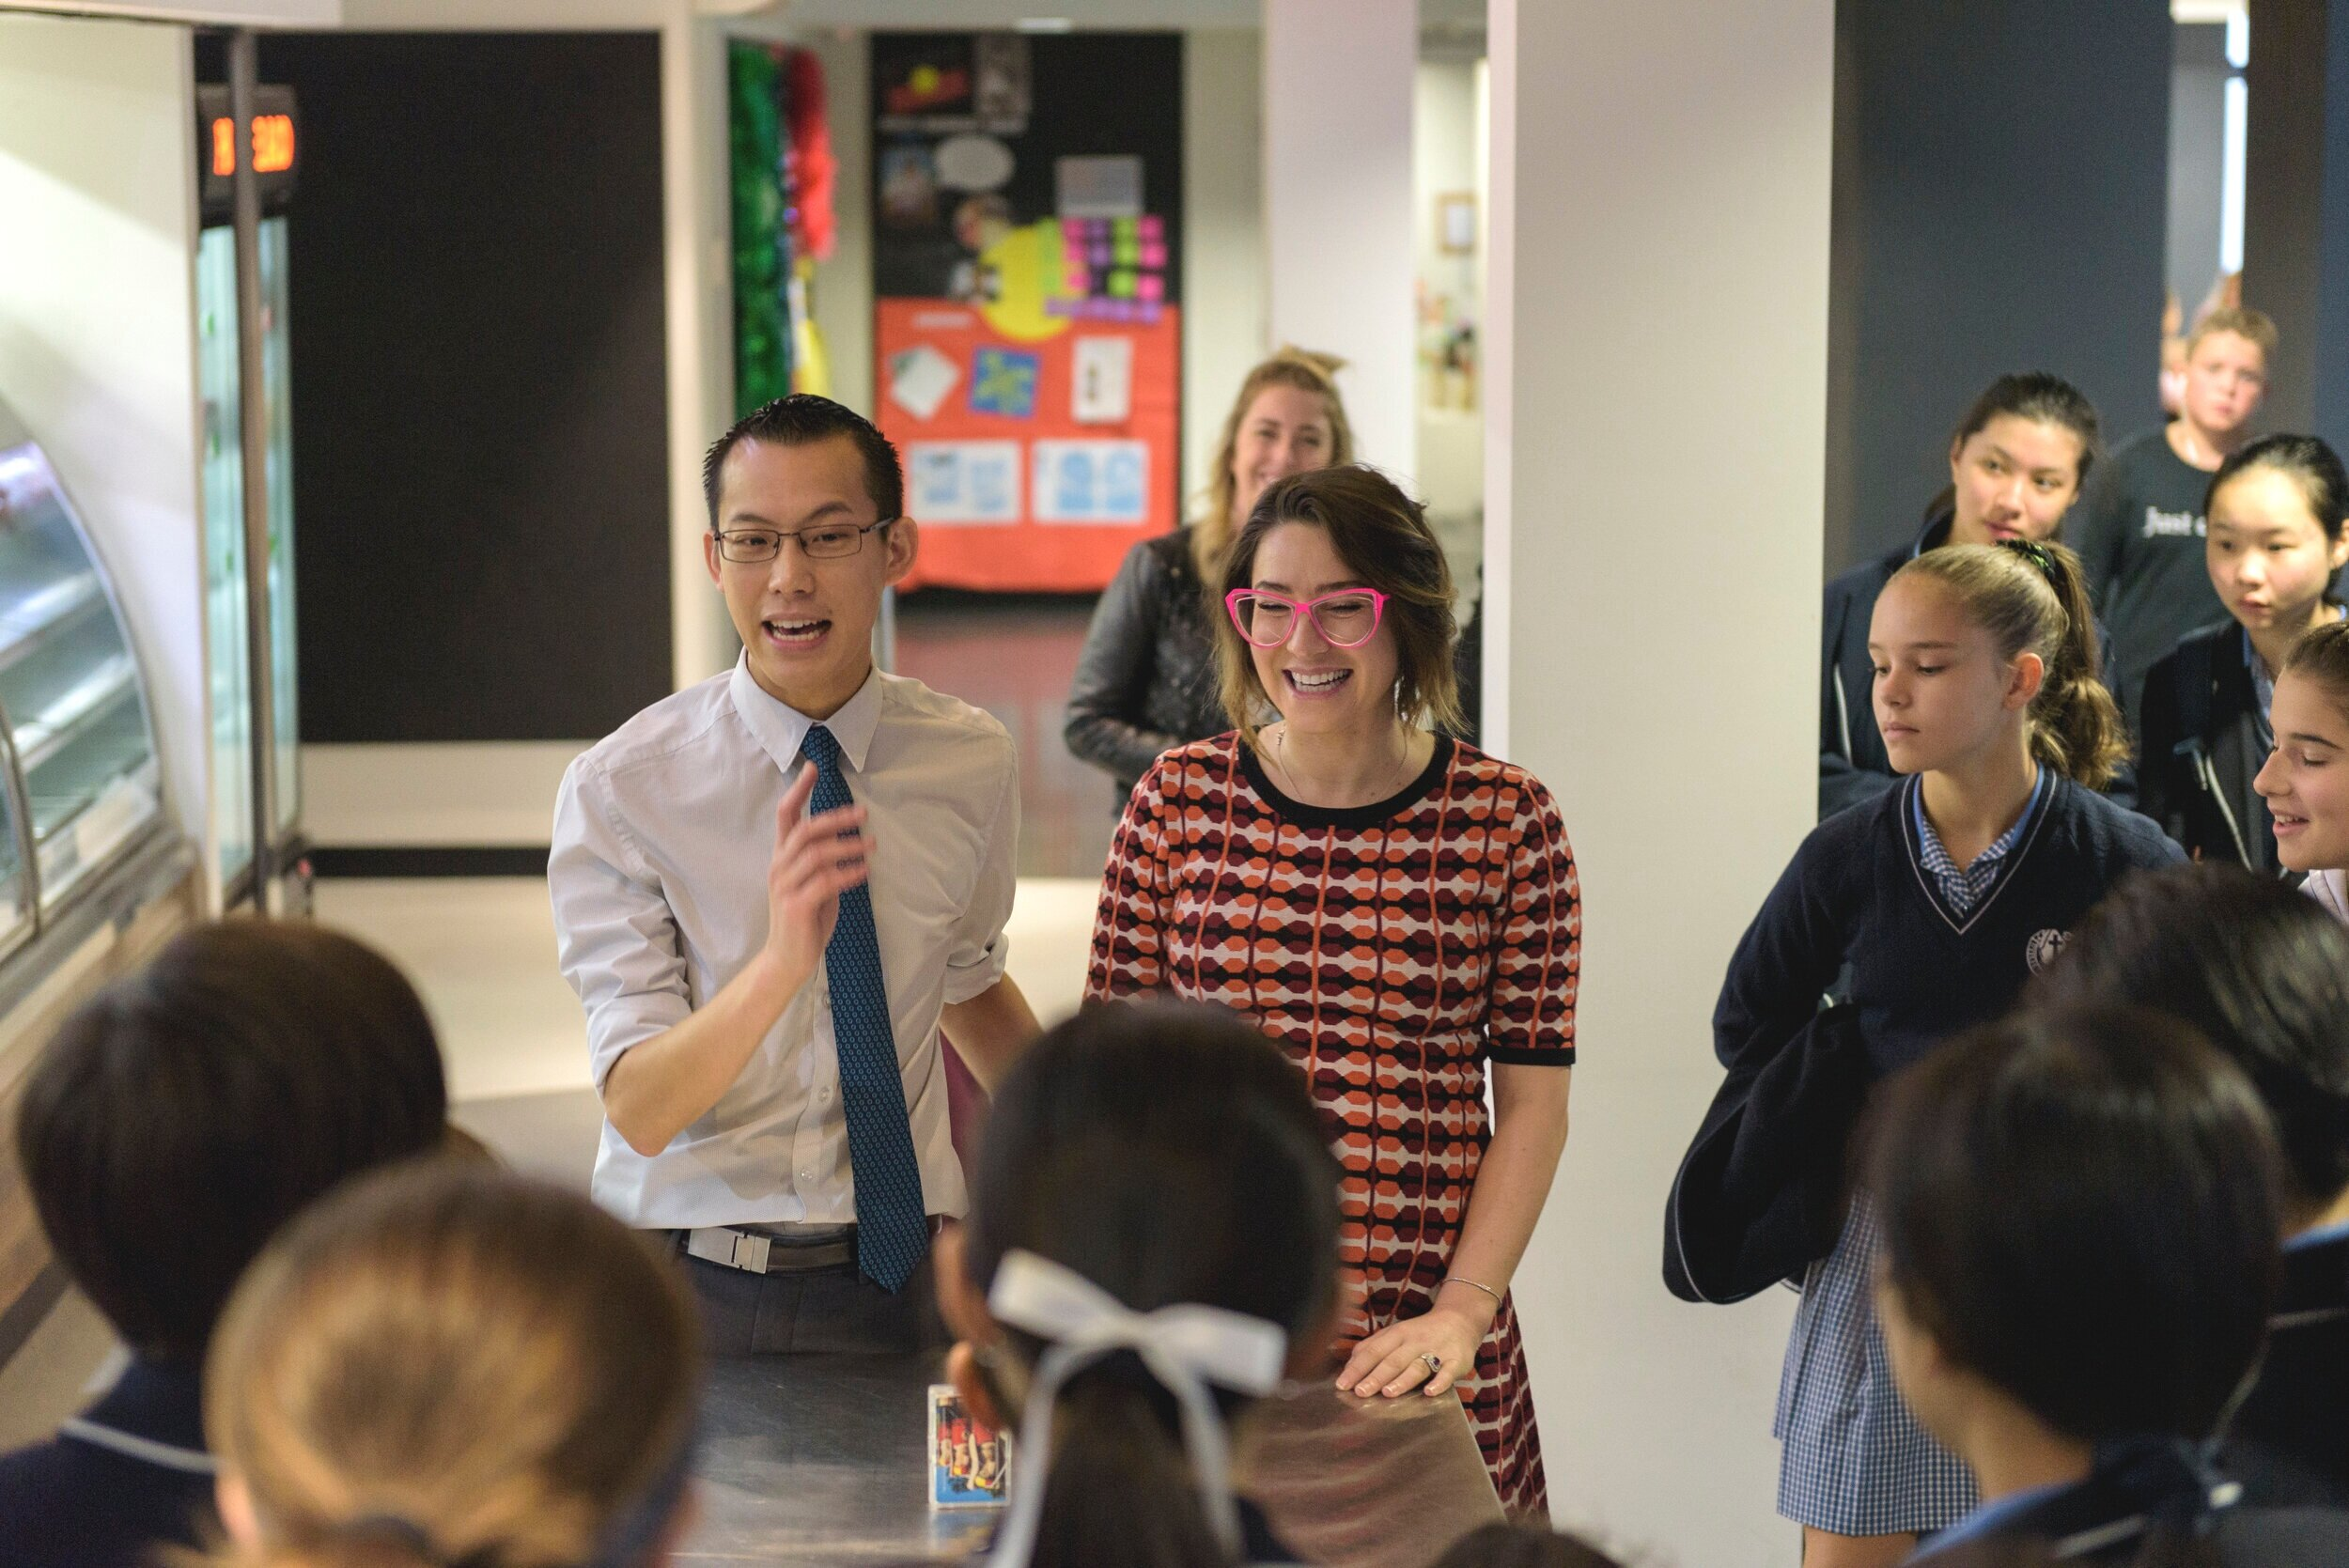 The famous Maths youtuber Eddie Woo and former Masterchef Alice Zaslavsky talking to a room of diehard Eddie Woo fans!